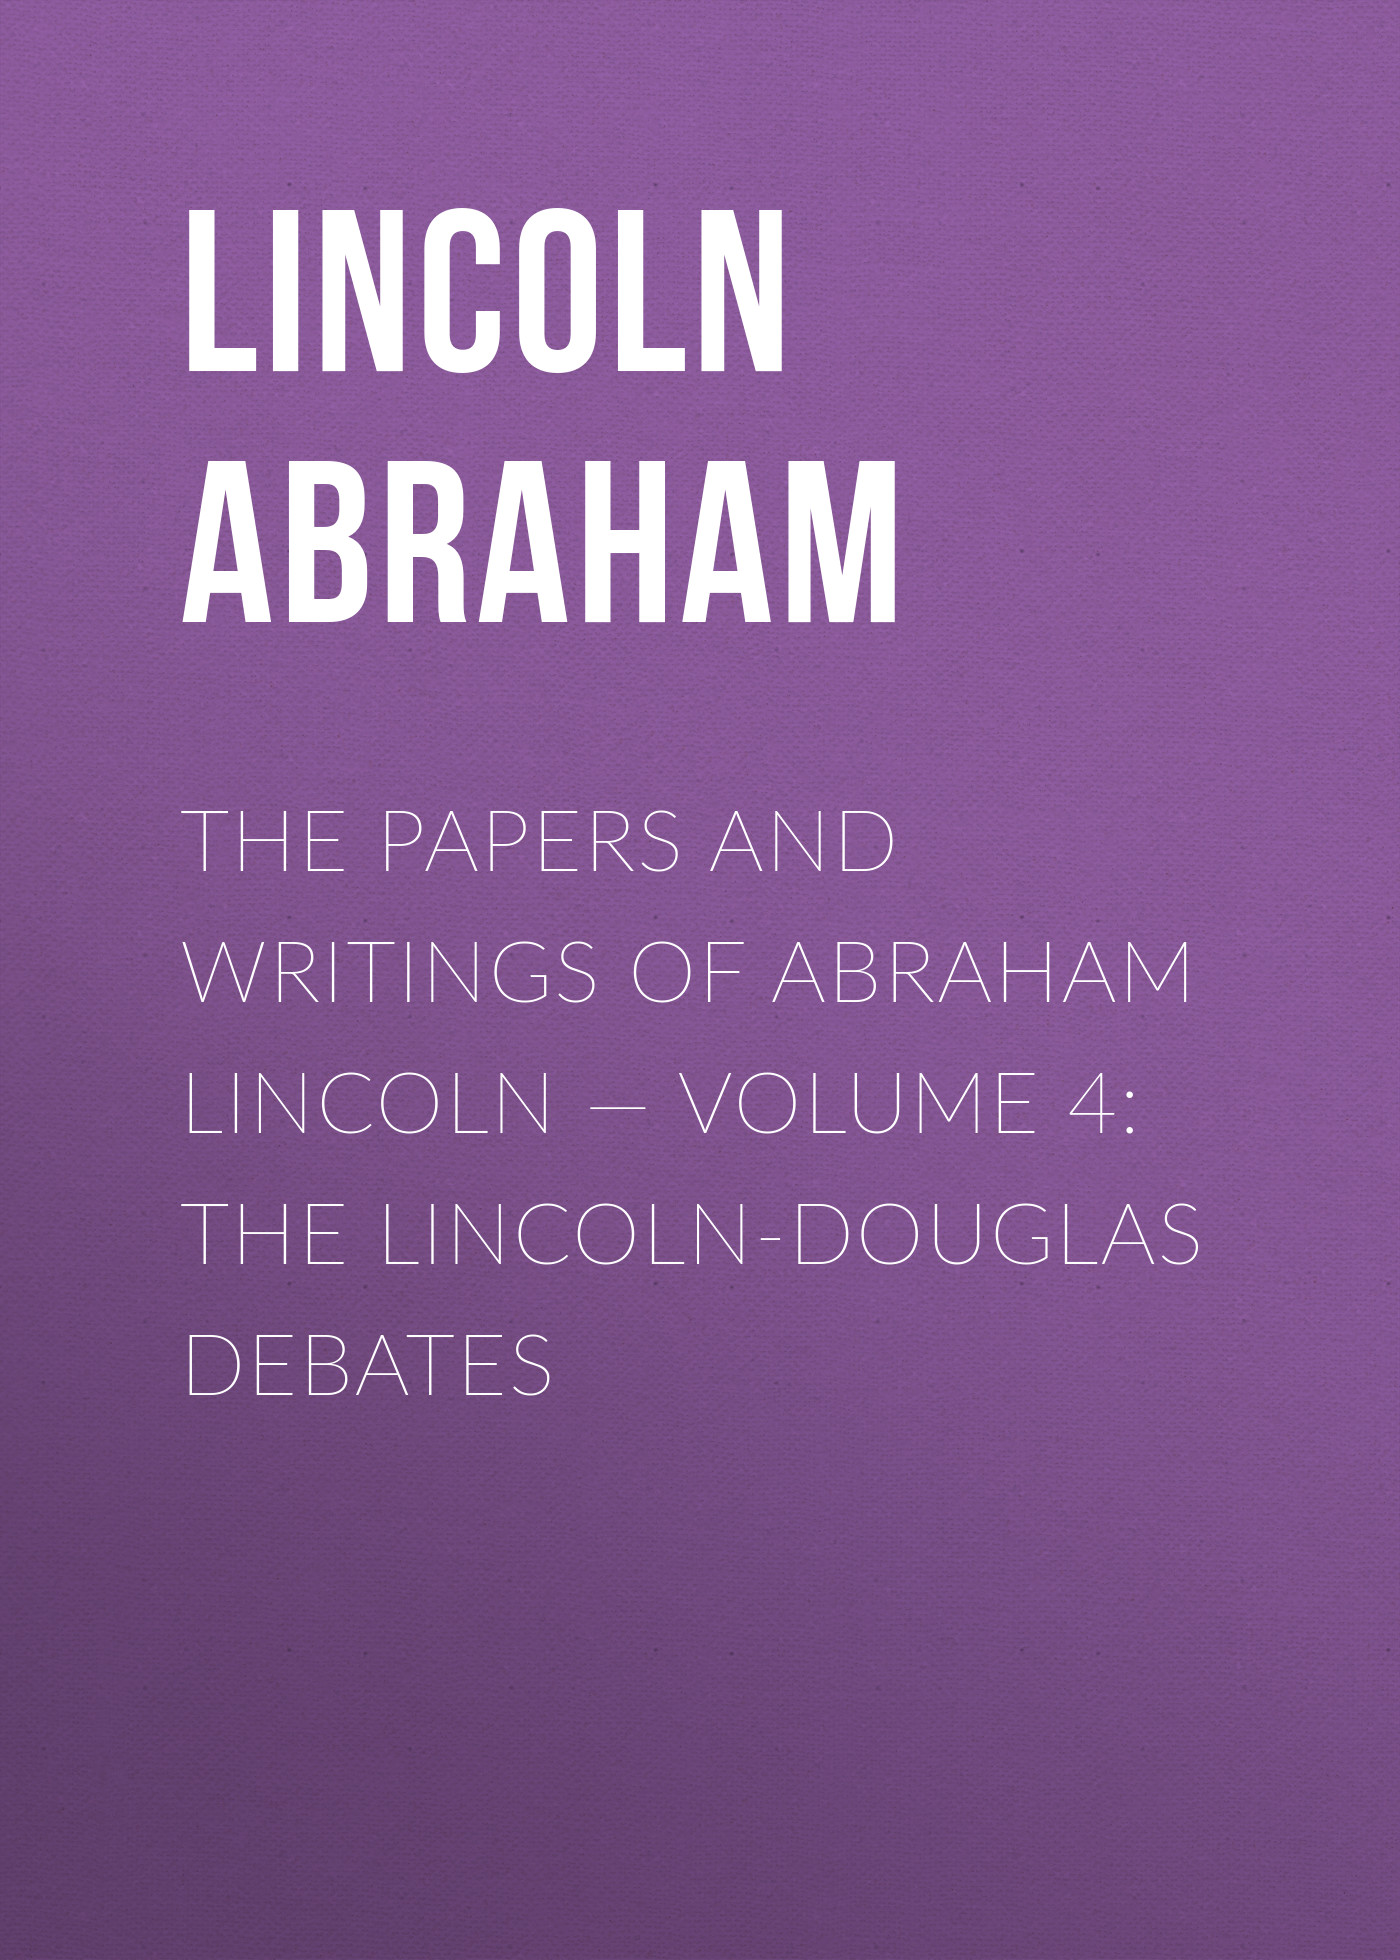 Lincoln Abraham The Papers And Writings Of Abraham Lincoln — Volume 4: The Lincoln-Douglas Debates набор из 2 х обеденных тарелок anna lafarg lf ceramics лаванда al 120e2257 l lf